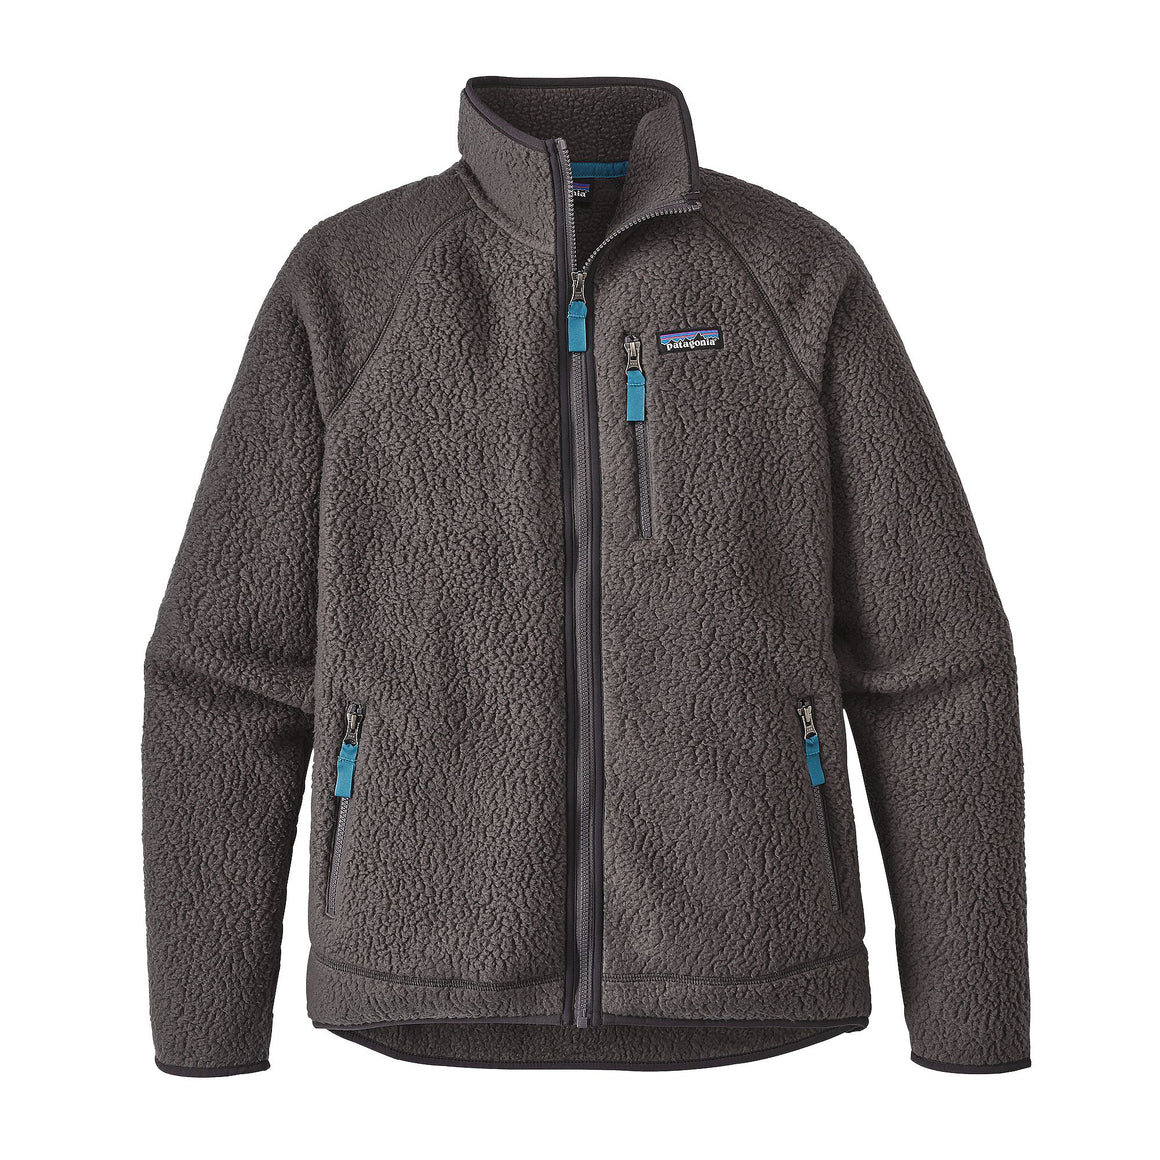 Patagonia Men's Retro Pile Fleece Jacket Forge Grey